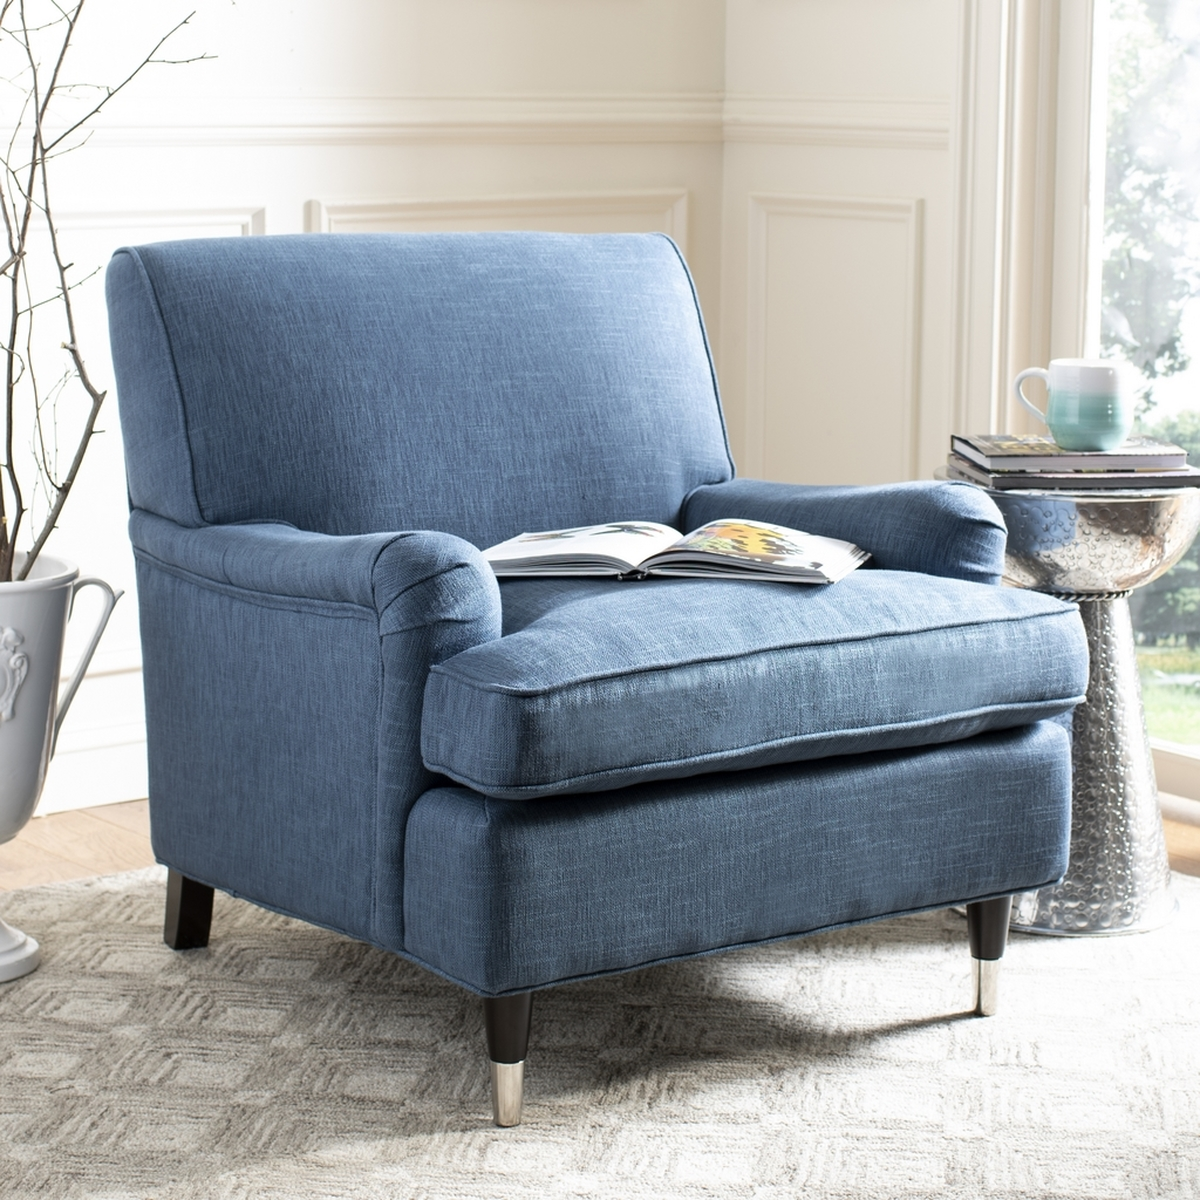 sofa blue color camelback cover navy linen armchair accent chairs safavieh